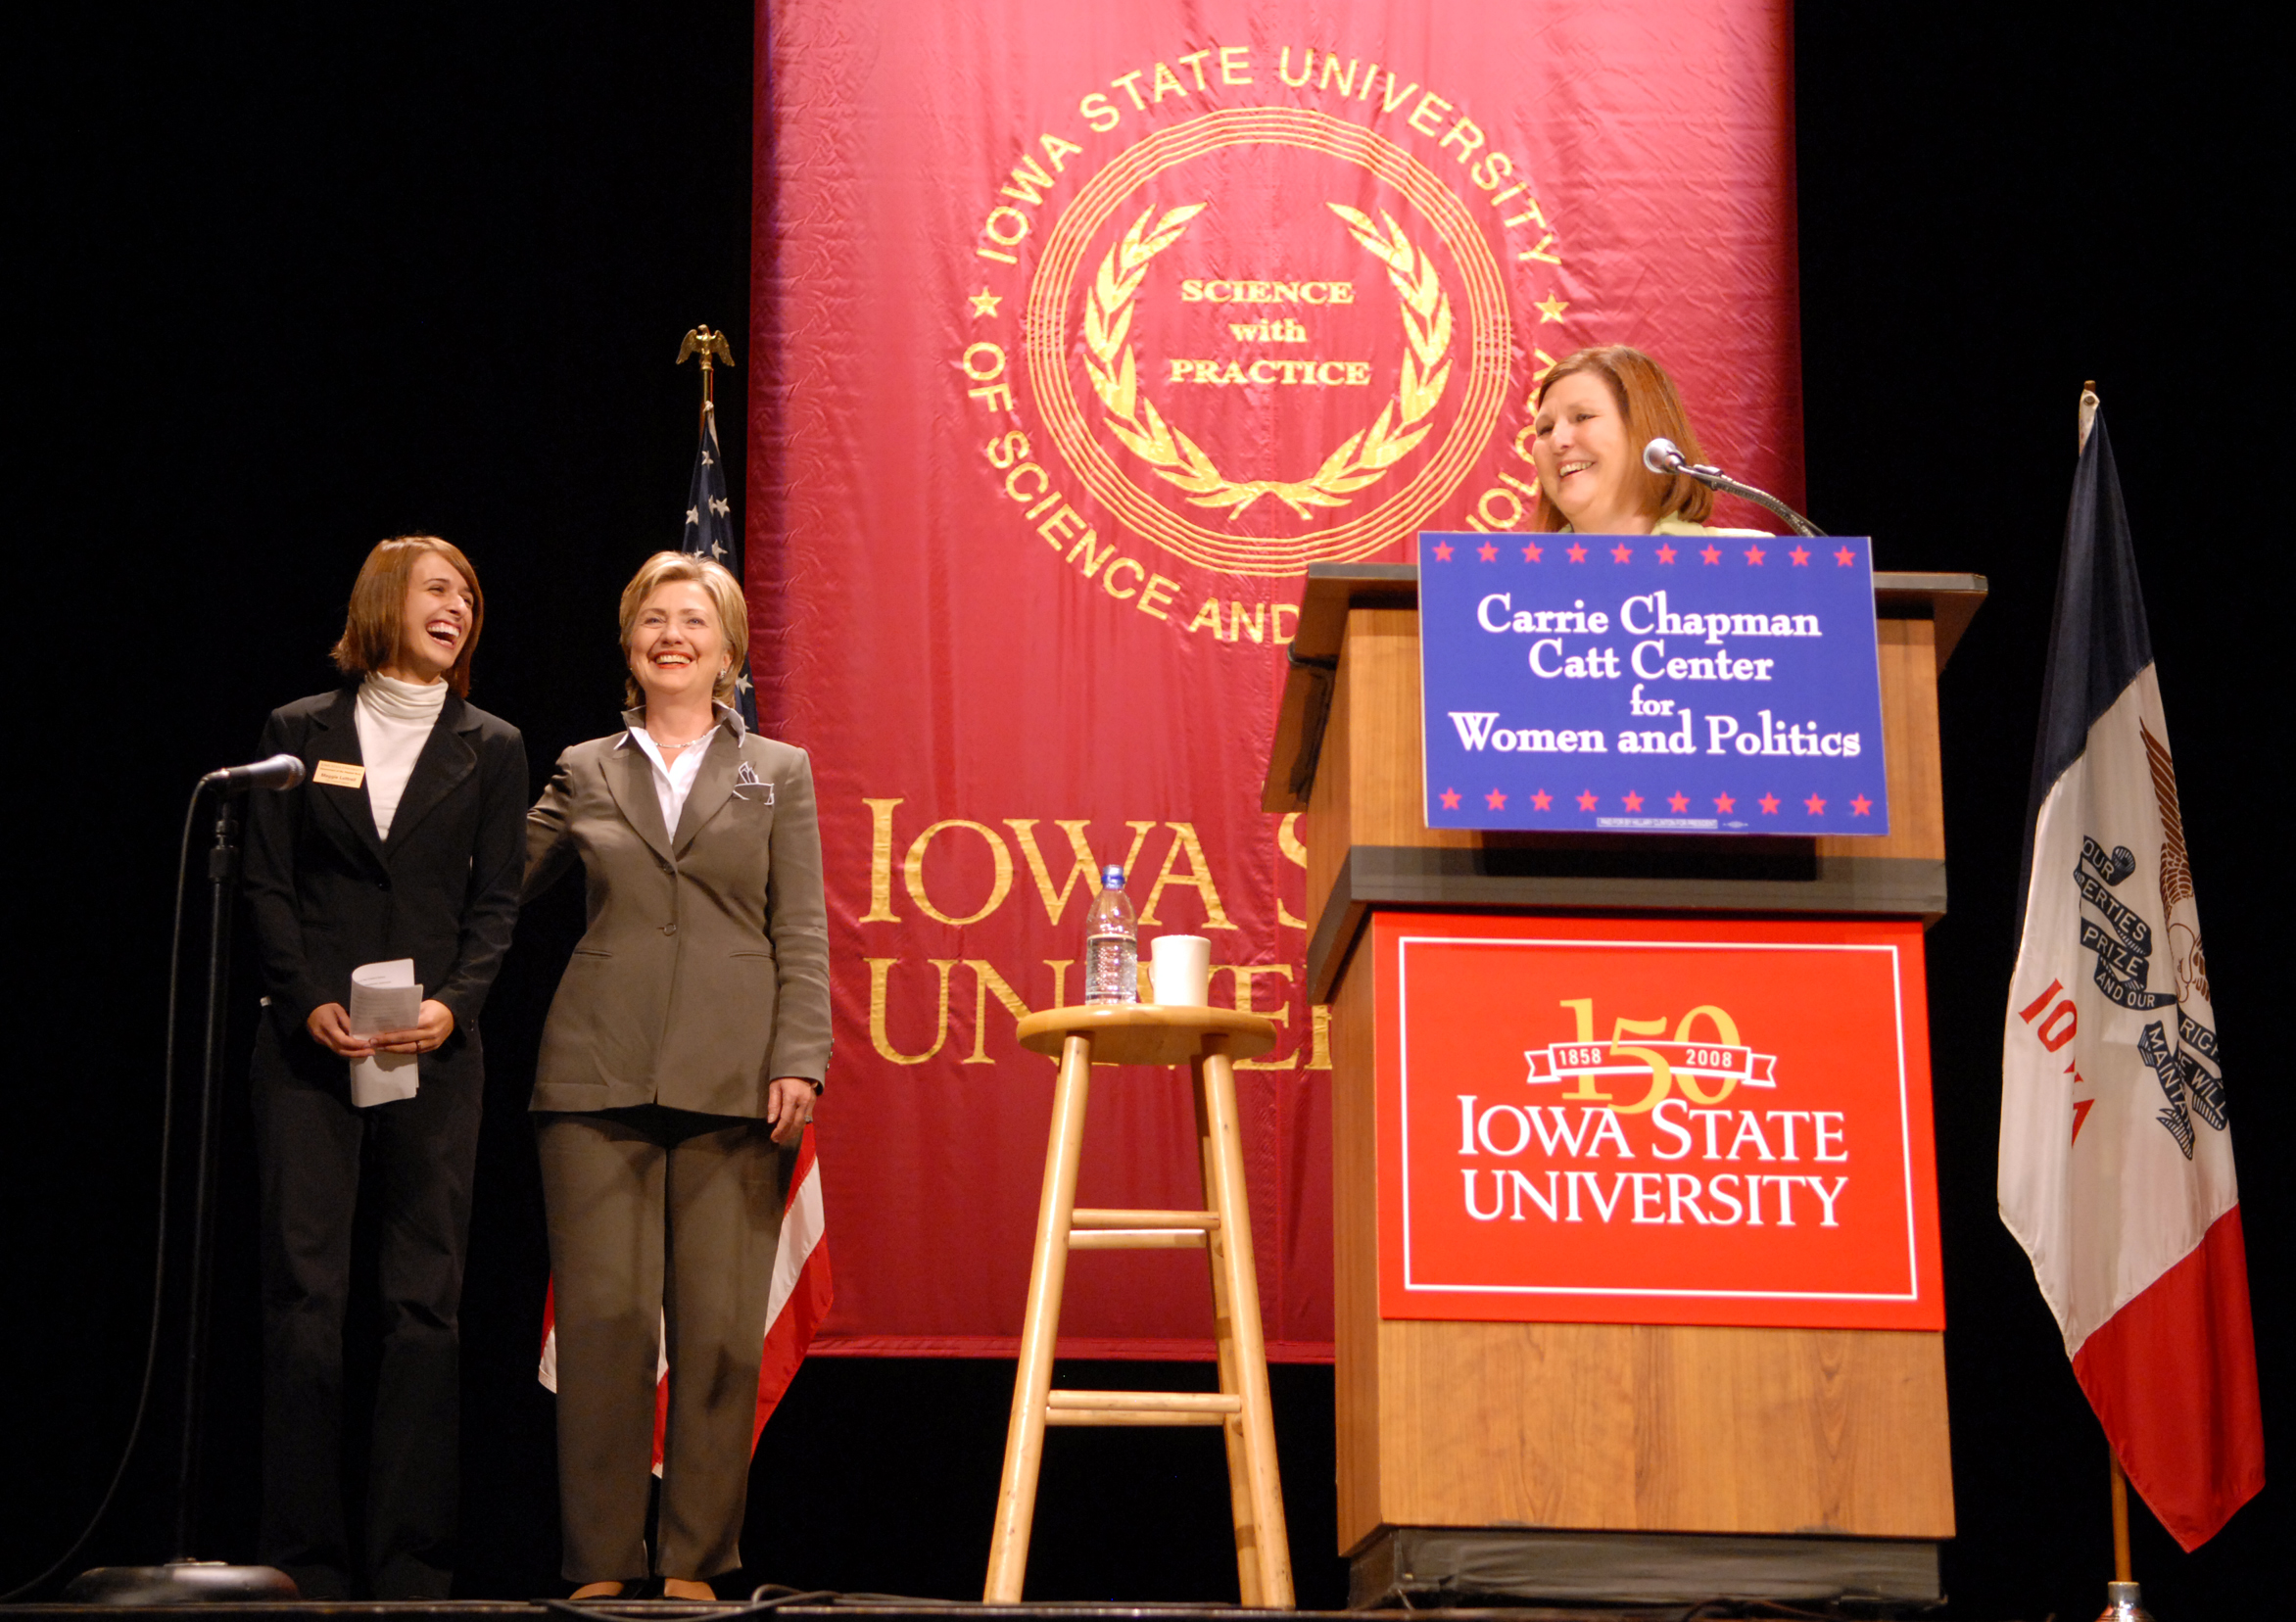 Dianne Bystrom speaks at a podium. Hillary Clinton and an Iowa State student stand next to the podium.